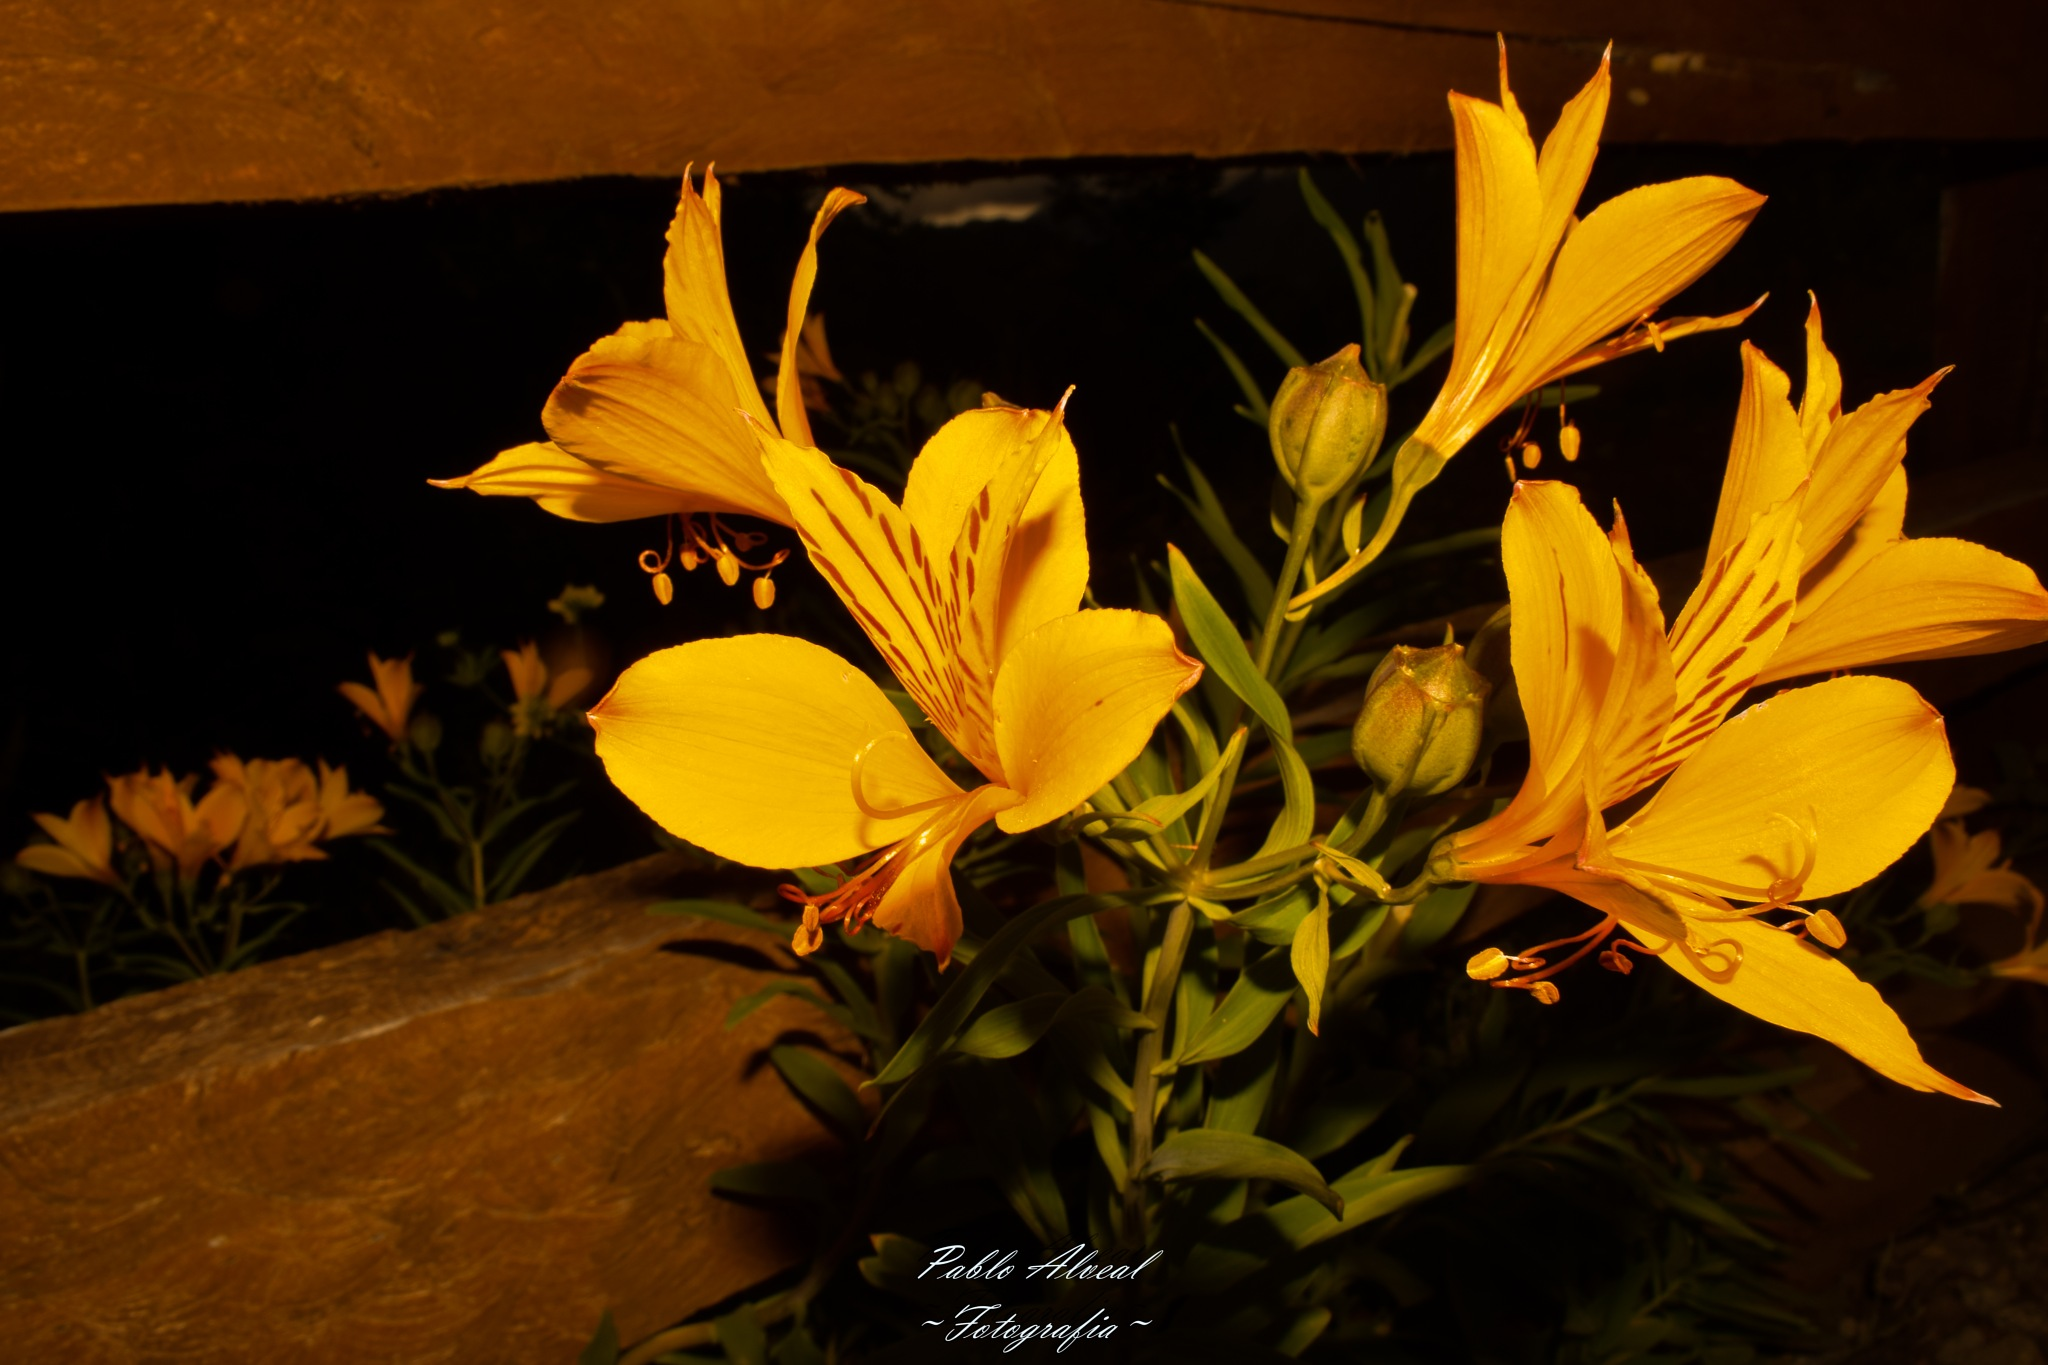 Yelow Flower by Pablo Abner Isaac Alveal